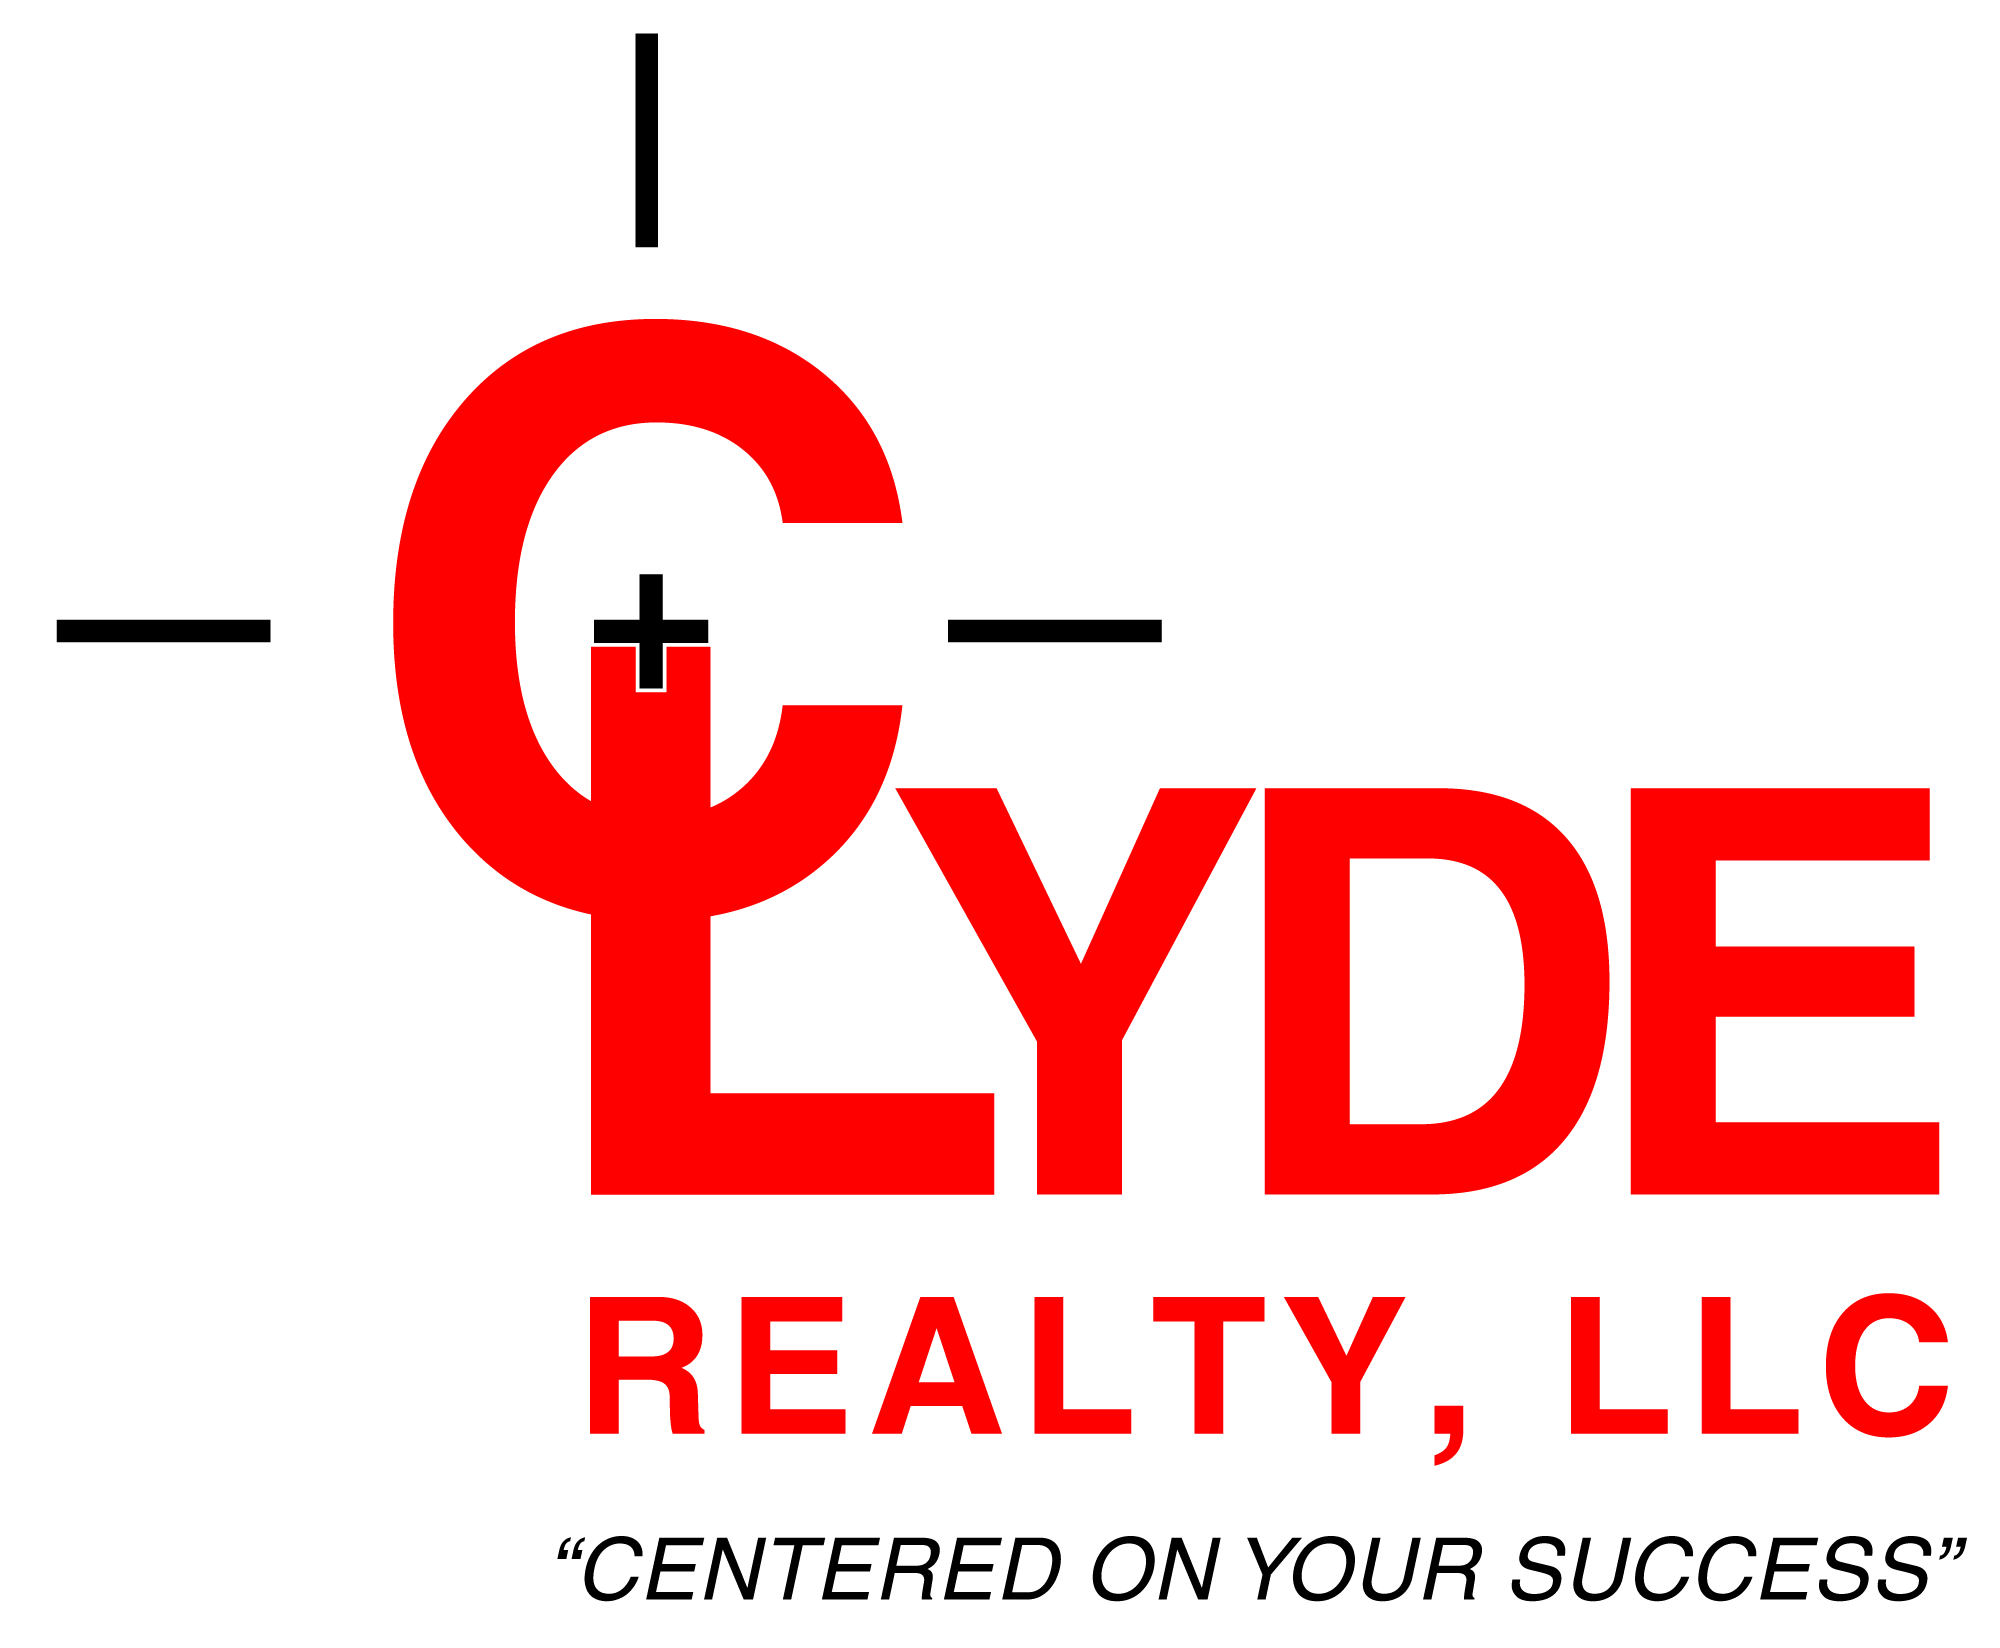 Clyde Realty